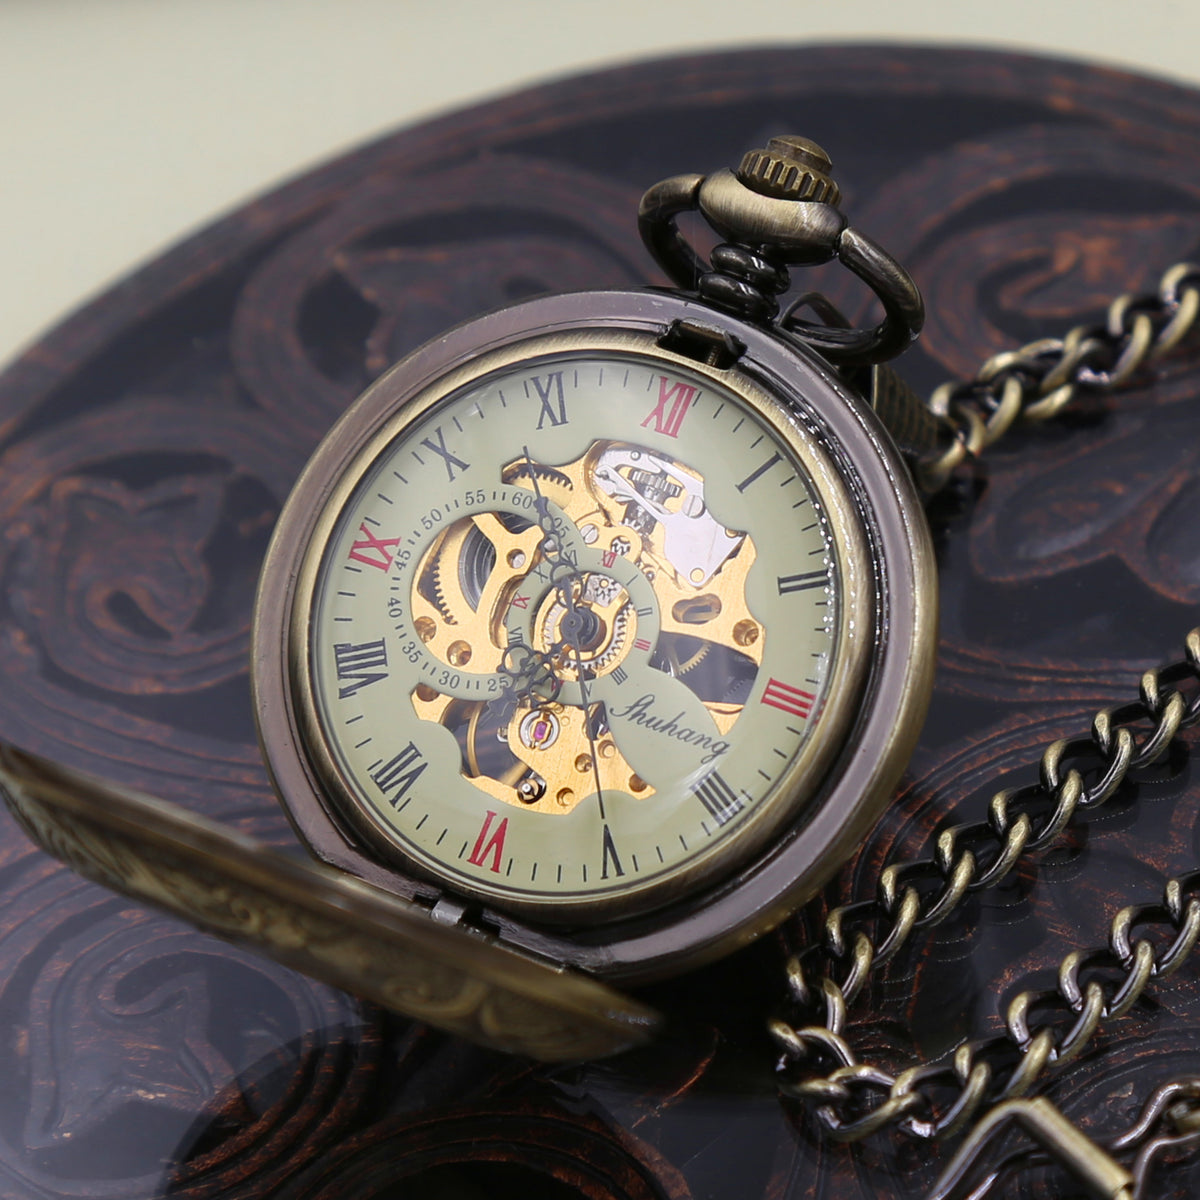 Mens Personalized Pocket Watch with chain - Antique bronze - Steampunk - Mechanical watch WEDDING GIFT VM009